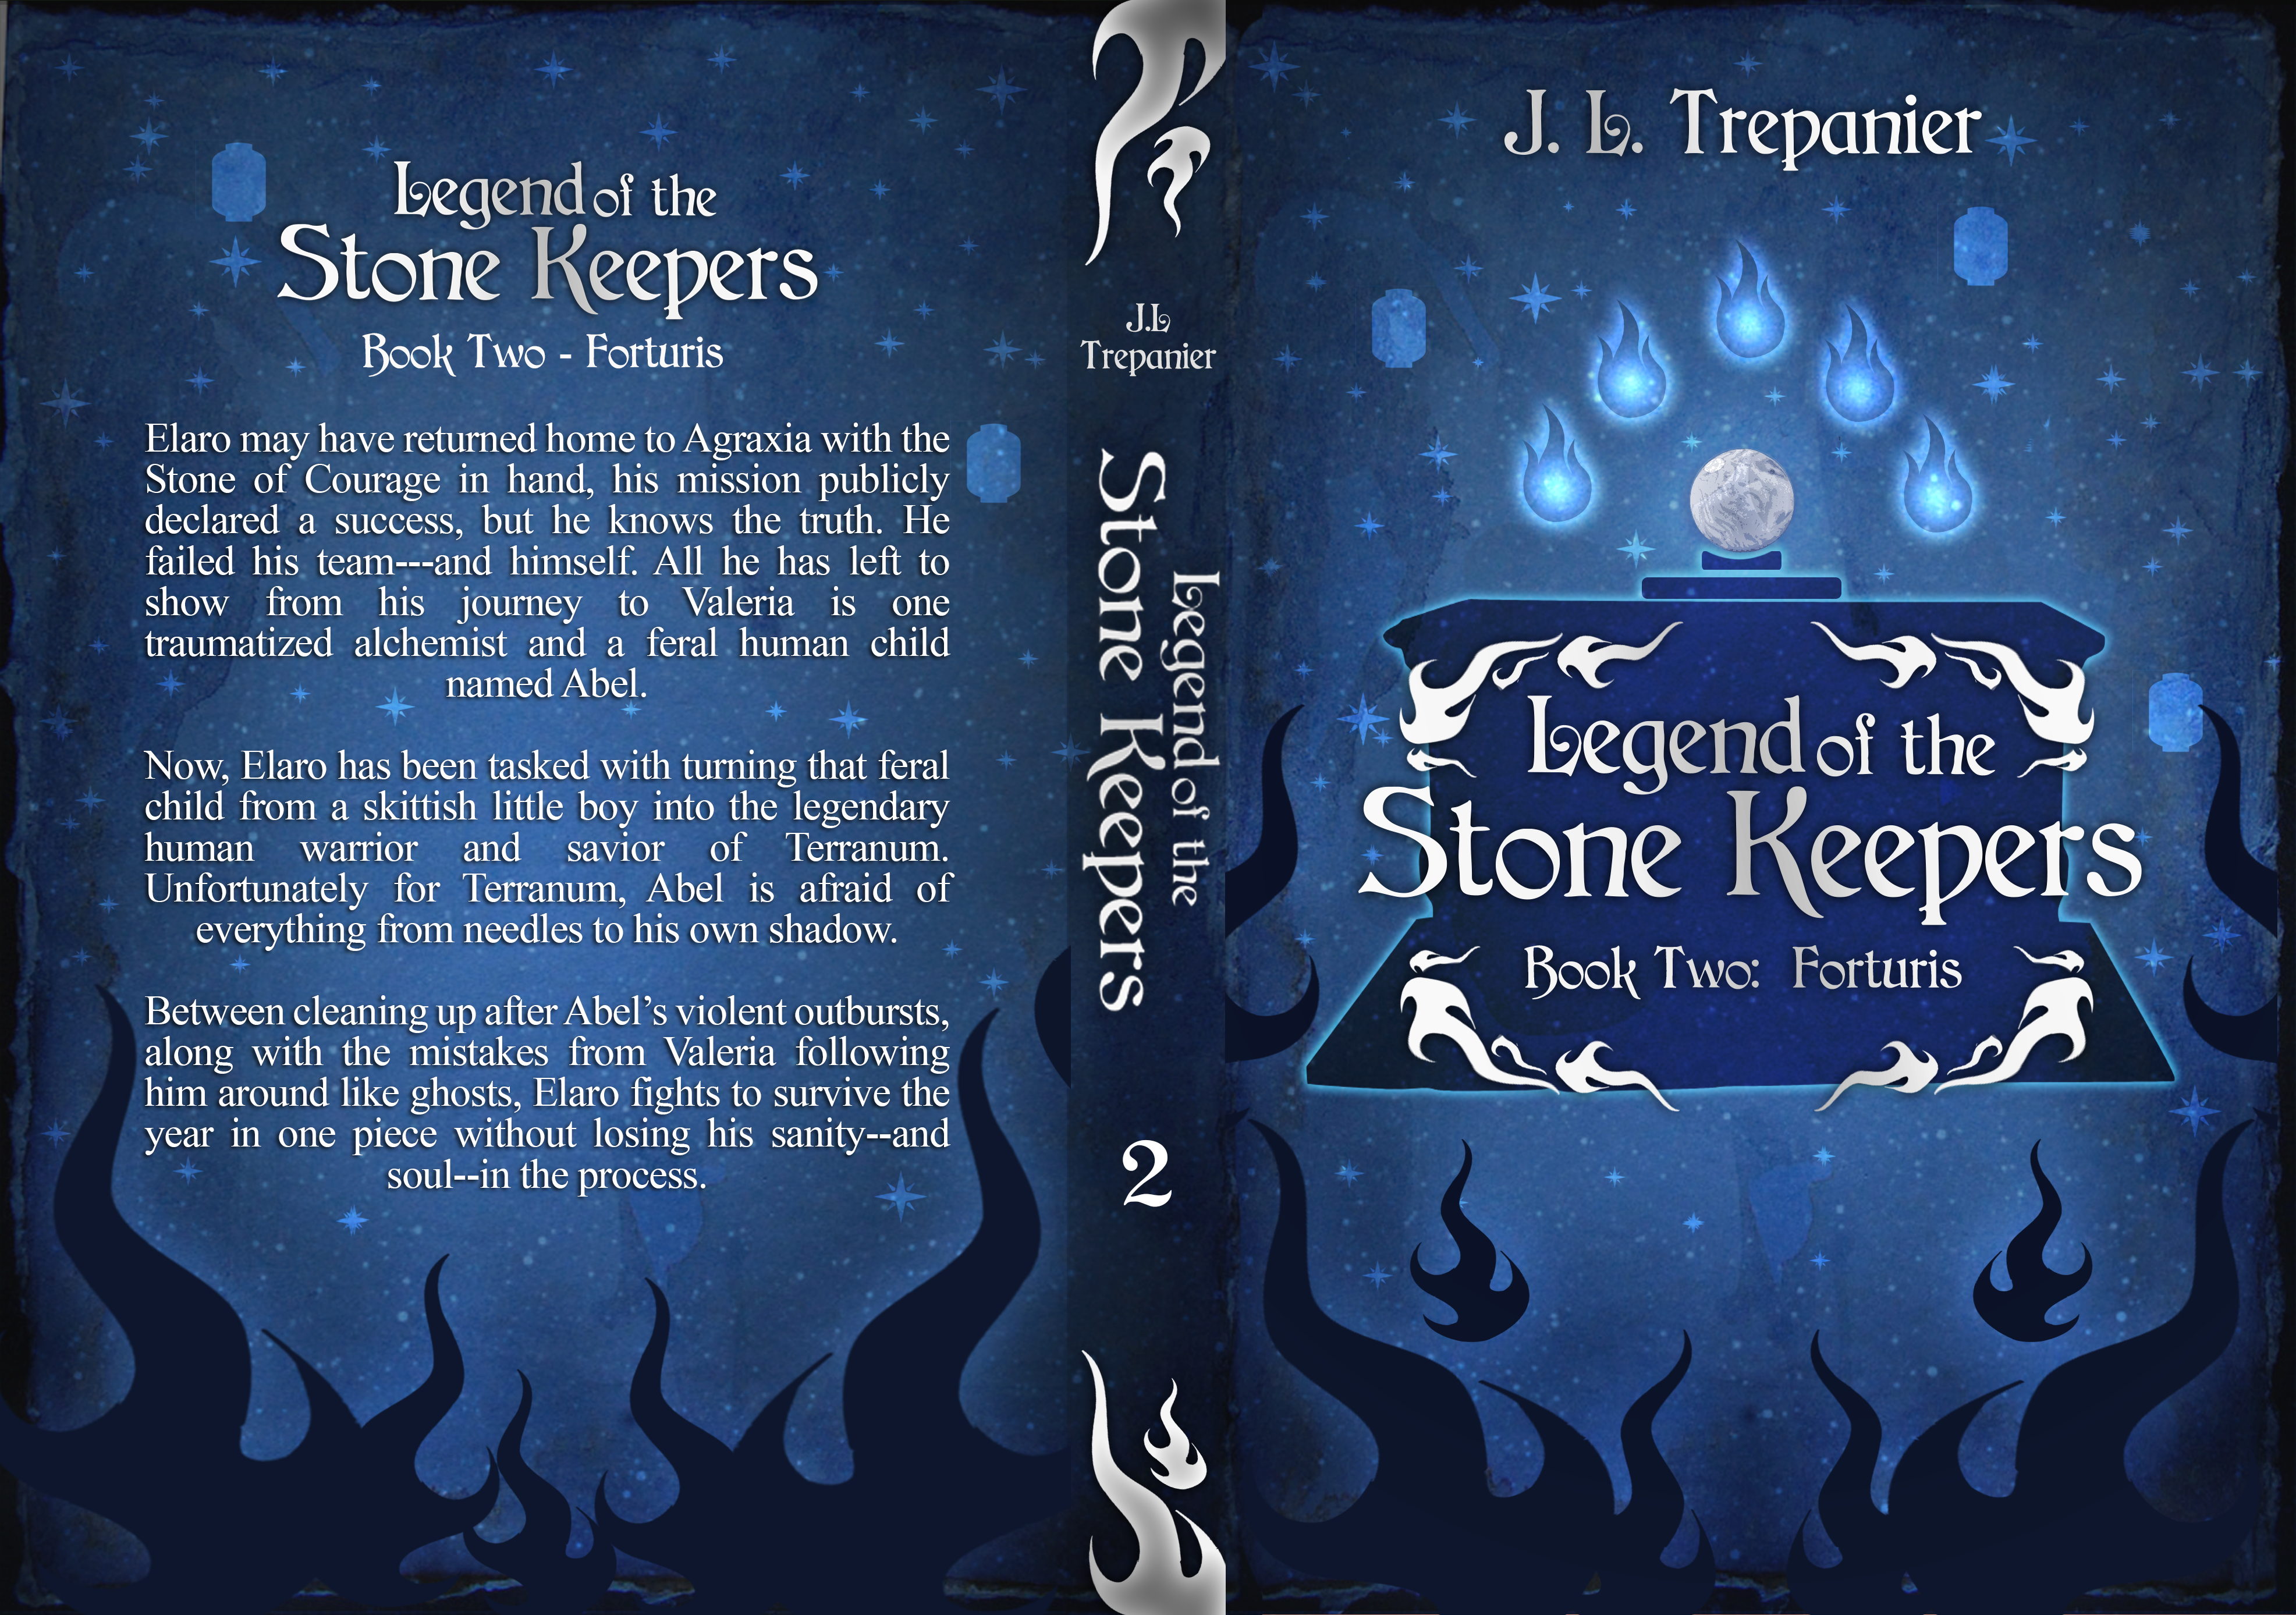 Legend of the Stone Keepers Book Two Cover